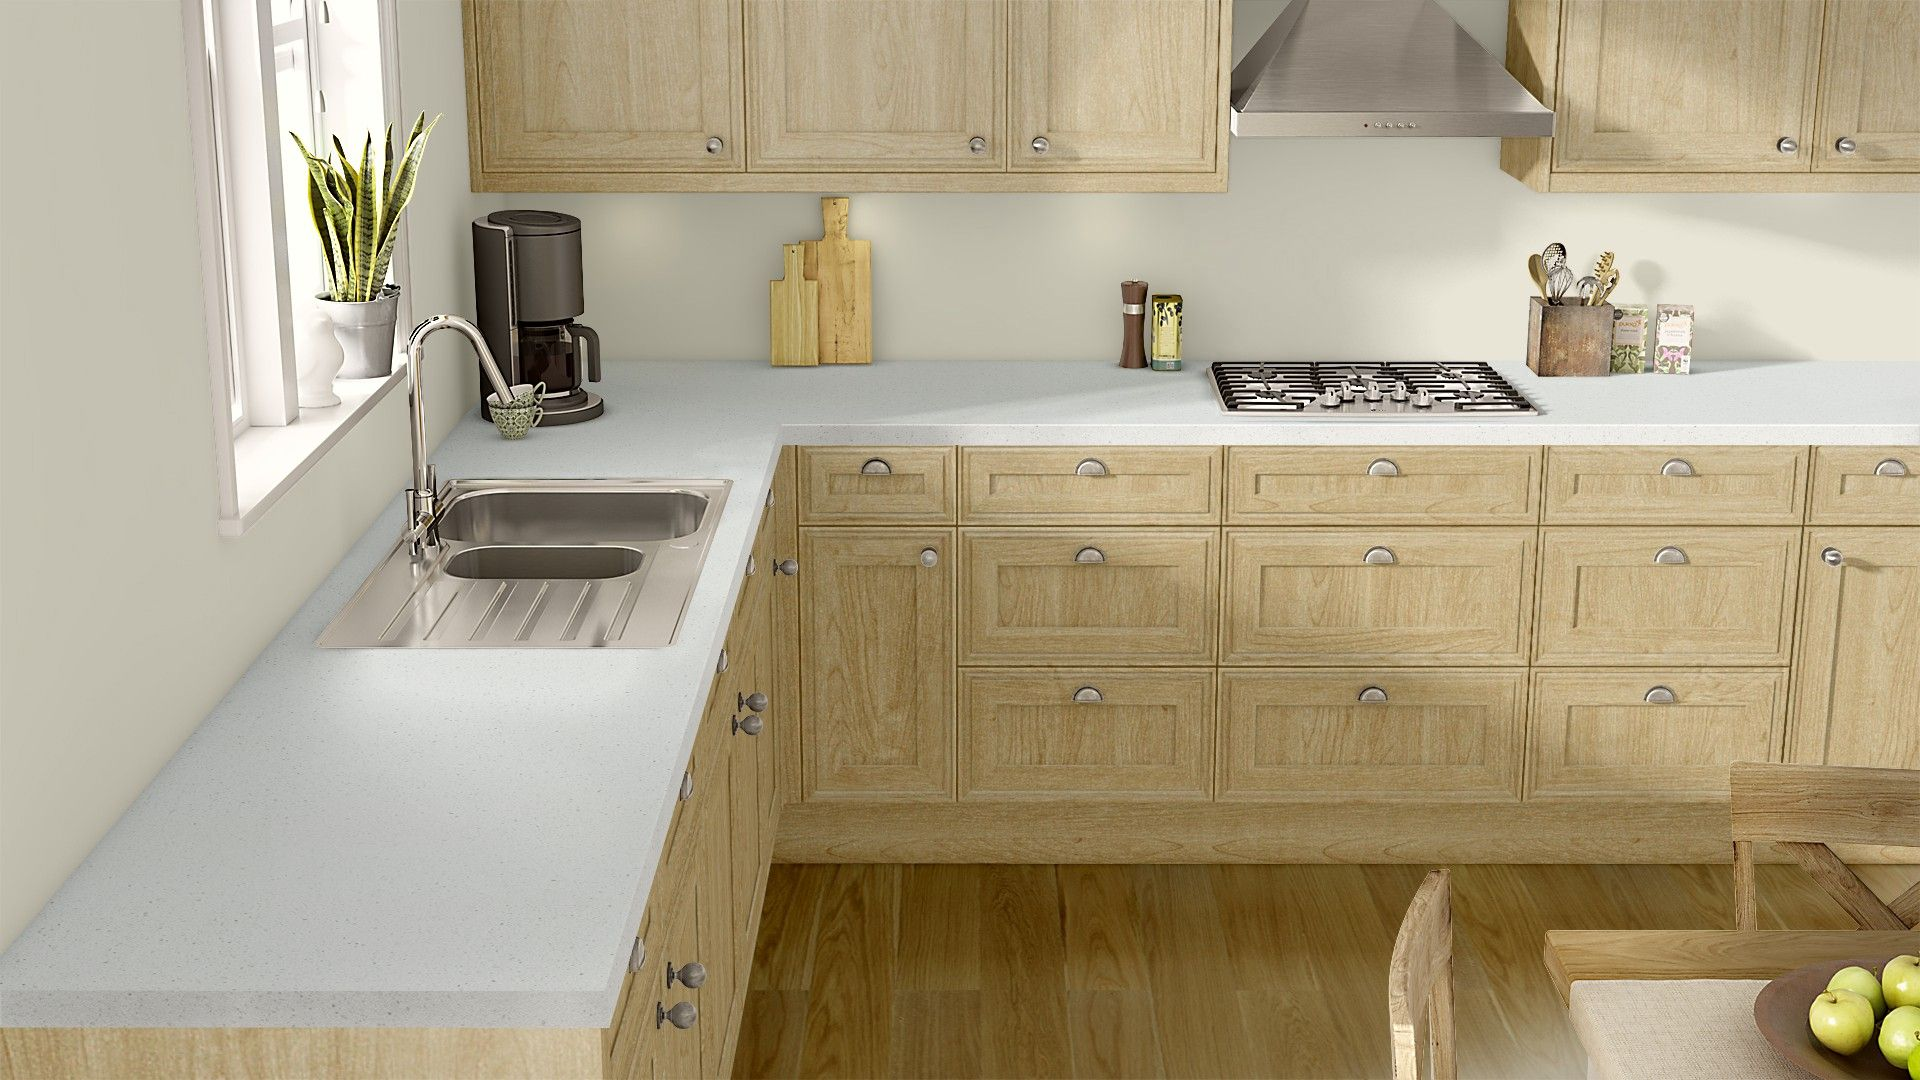 Get Inspired For Your Kitchen Renovation With Wilsonarts Free - How to get your kitchen remodeled for free